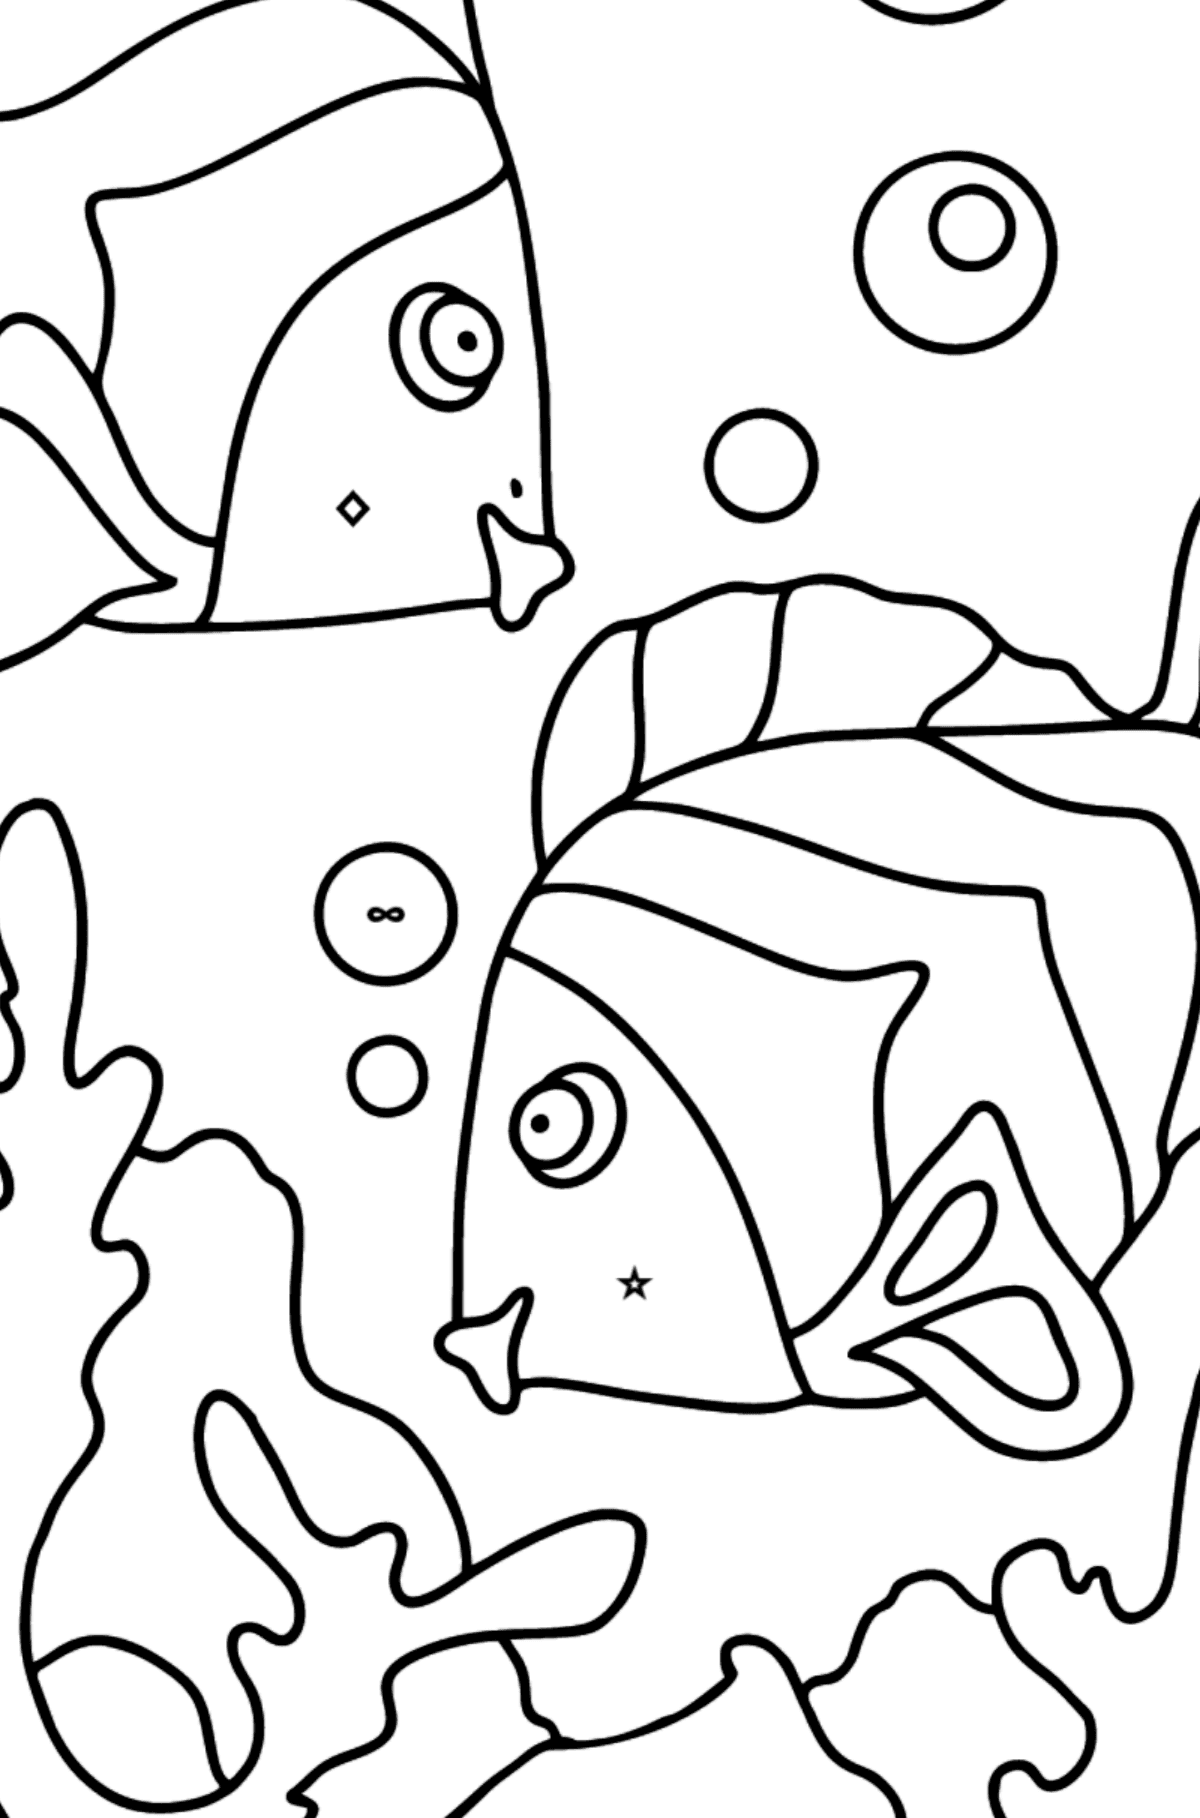 Coloring Page - Fish are Playing Happily - Coloring by Symbols and Geometric Shapes for Kids